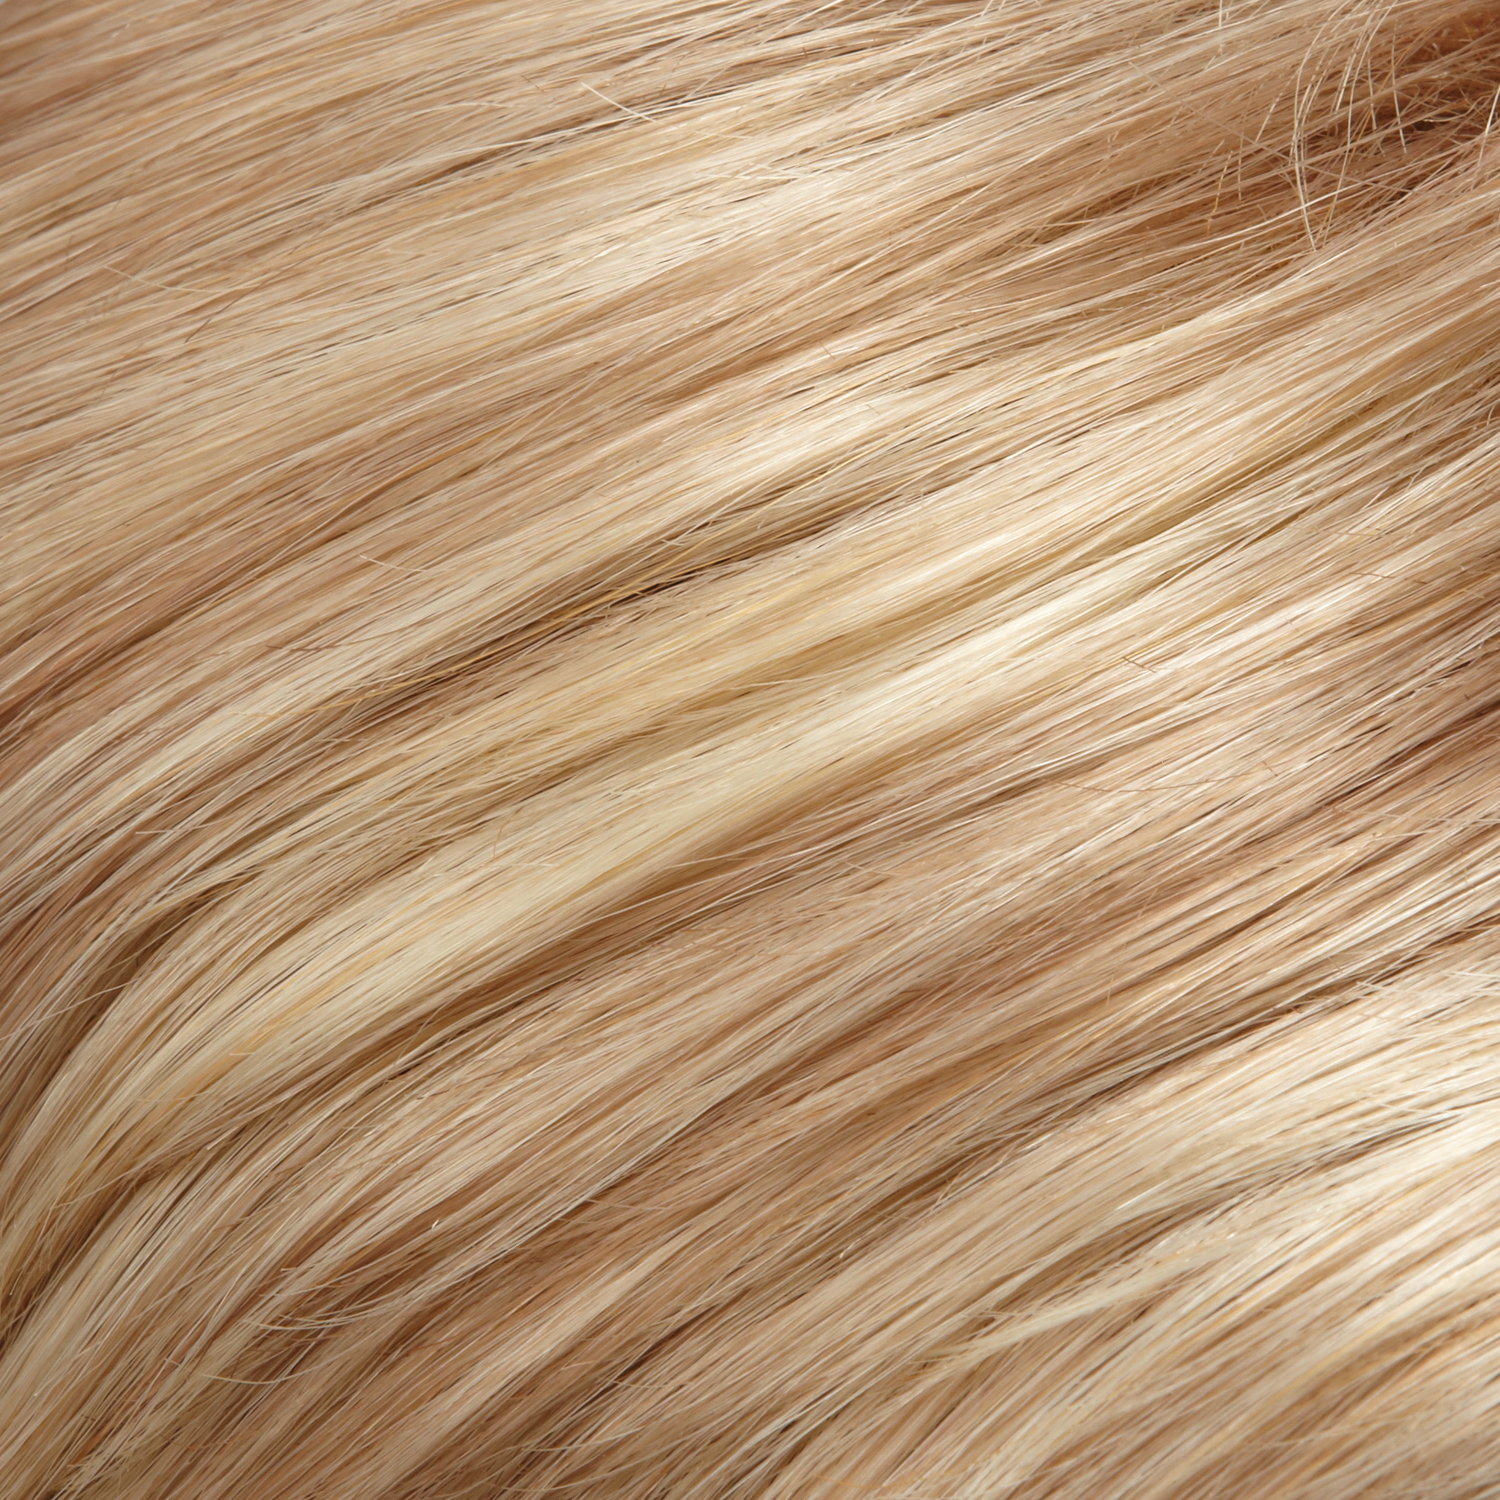 24B22 - Light Golden Blonde & Light Ash Blonde Blend